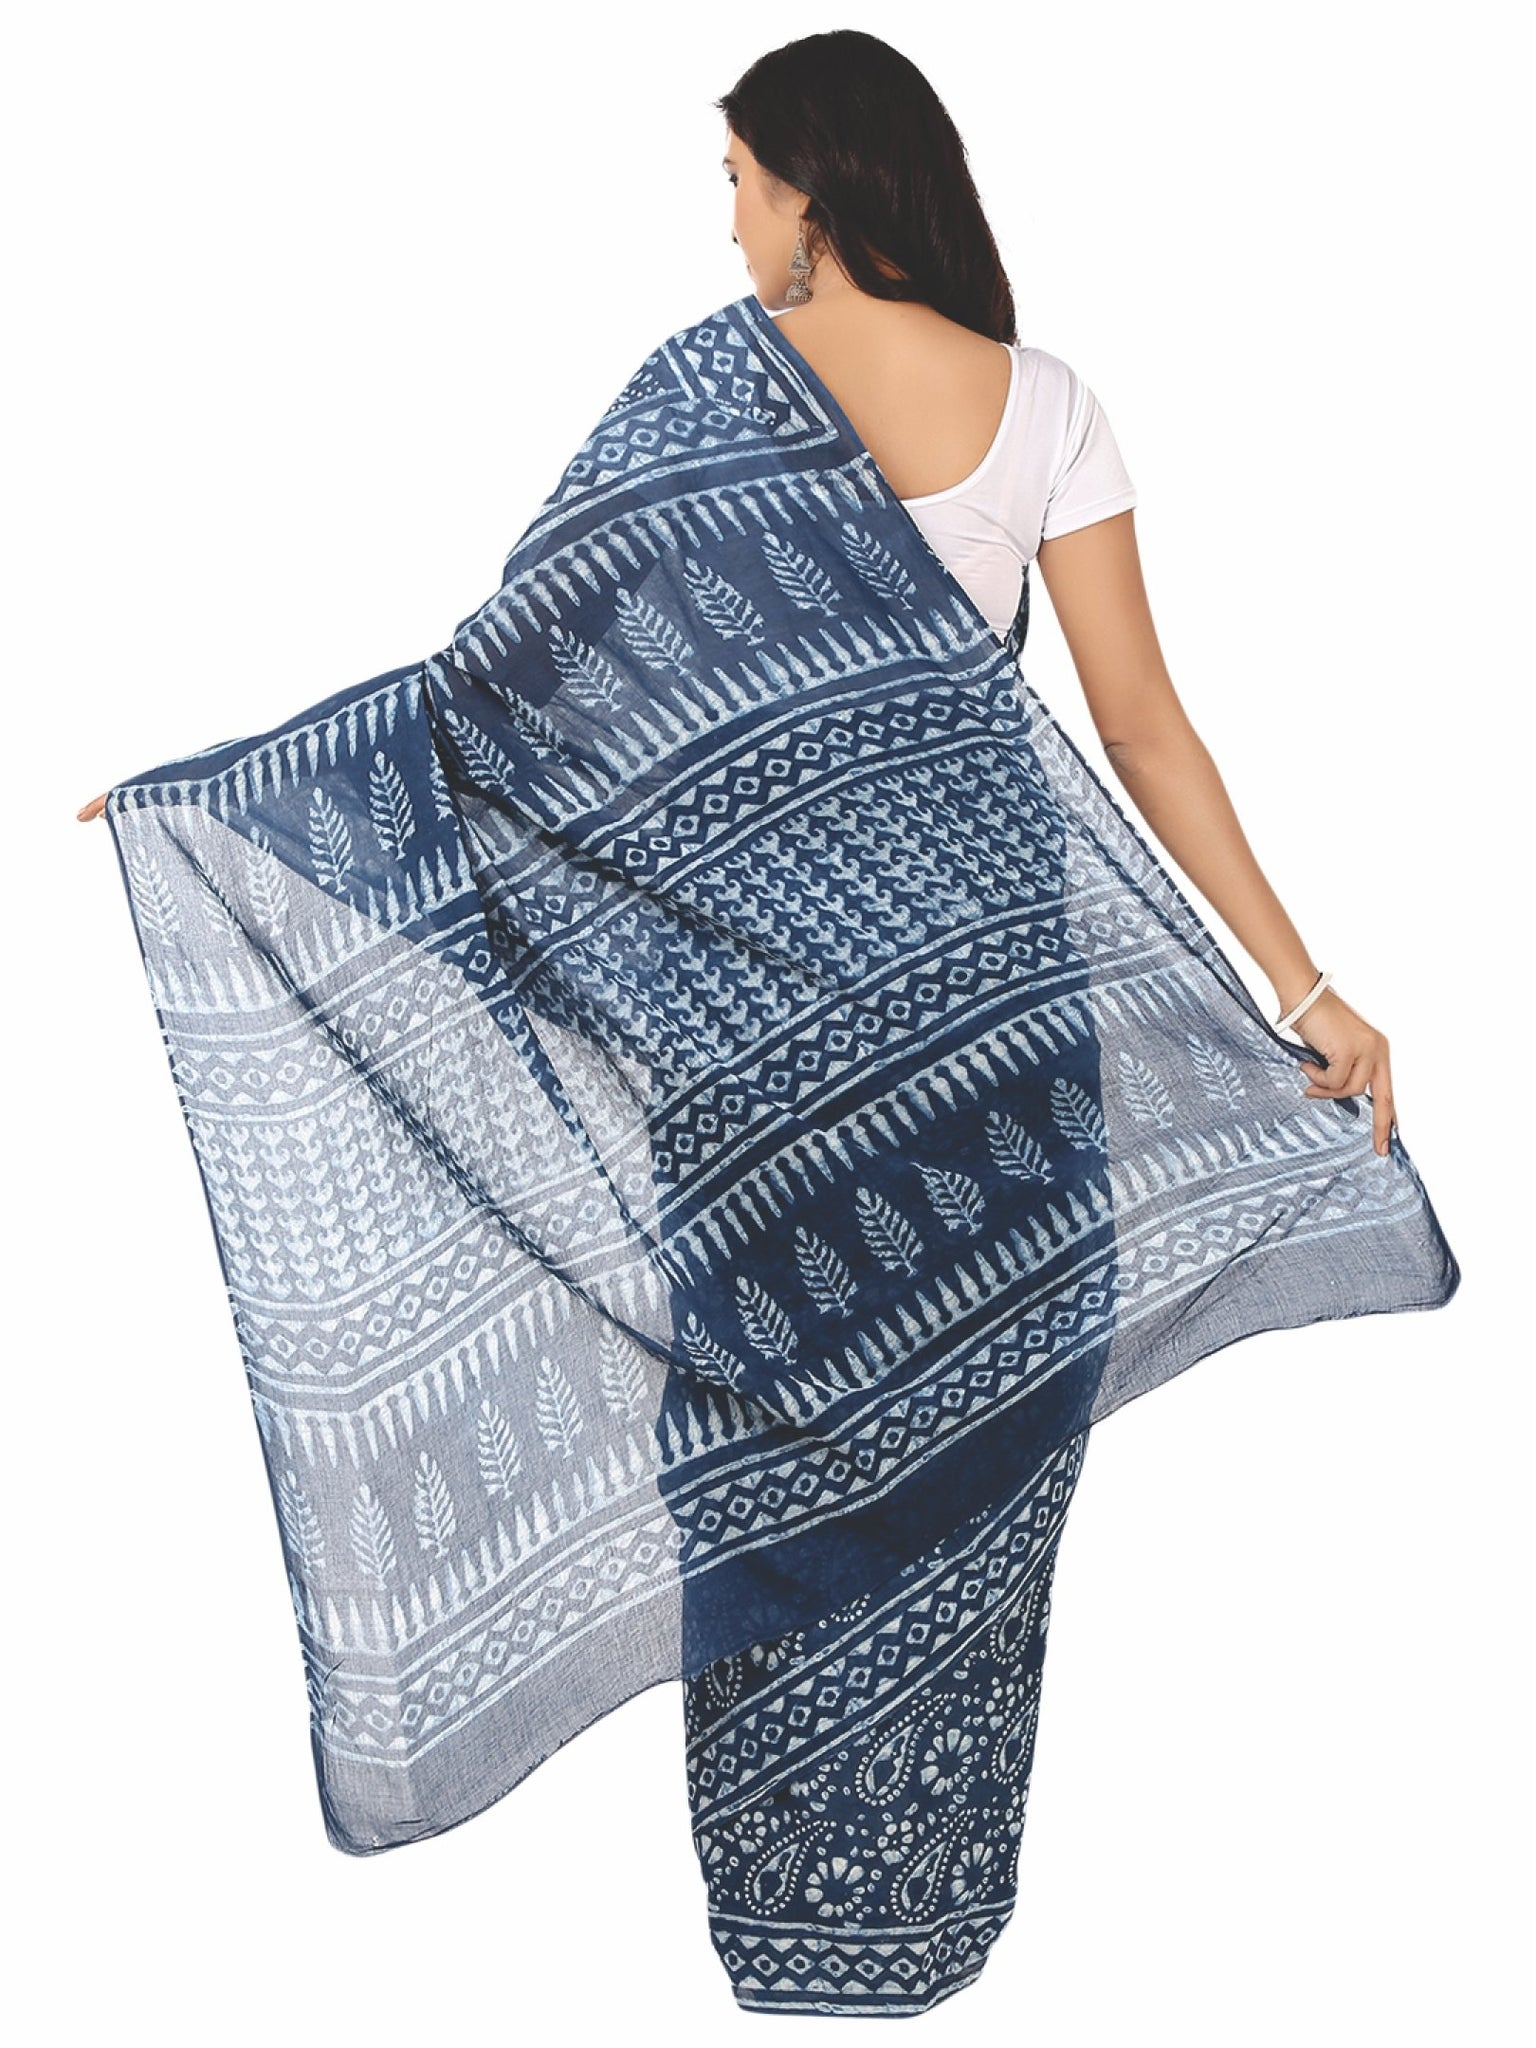 Indigo Dabu Hand Block Print Handcrafted Cotton Saree-Saree-Kalakari India-BAPASA0018-Cotton, Dabu, Geographical Indication, Hand Blocks, Hand Crafted, Heritage Prints, Indigo, Natural Dyes, Sarees, Sustainable Fabrics-[Linen,Ethnic,wear,Fashionista,Handloom,Handicraft,Indigo,blockprint,block,print,Cotton,Chanderi,Blue, latest,classy,party,bollywood,trendy,summer,style,traditional,formal,elegant,unique,style,hand,block,print, dabu,booti,gift,present,glamorous,affordable,collectible,Sari,Saree,pr